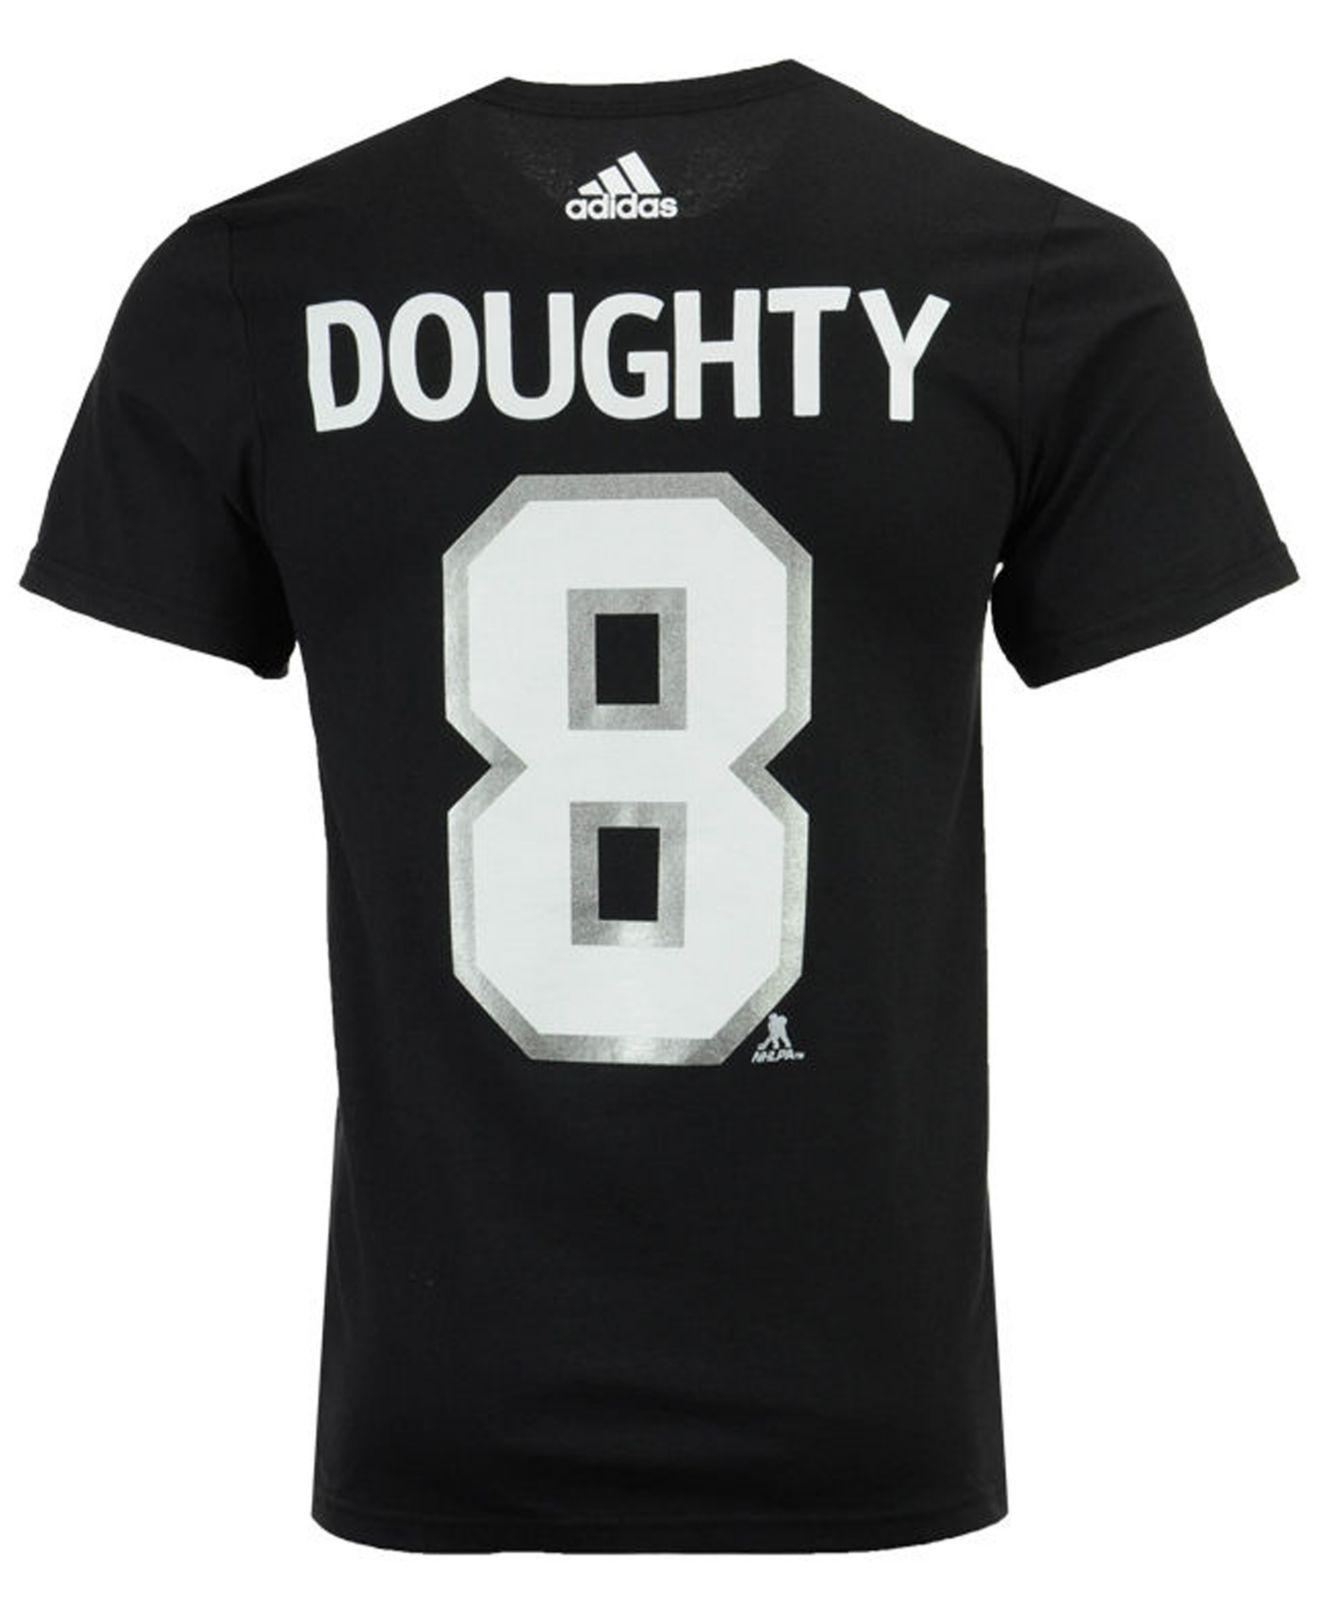 Lyst - adidas Drew Doughty Los Angeles Kings Silver Player T-shirt in Black  for Men c79e4c51f